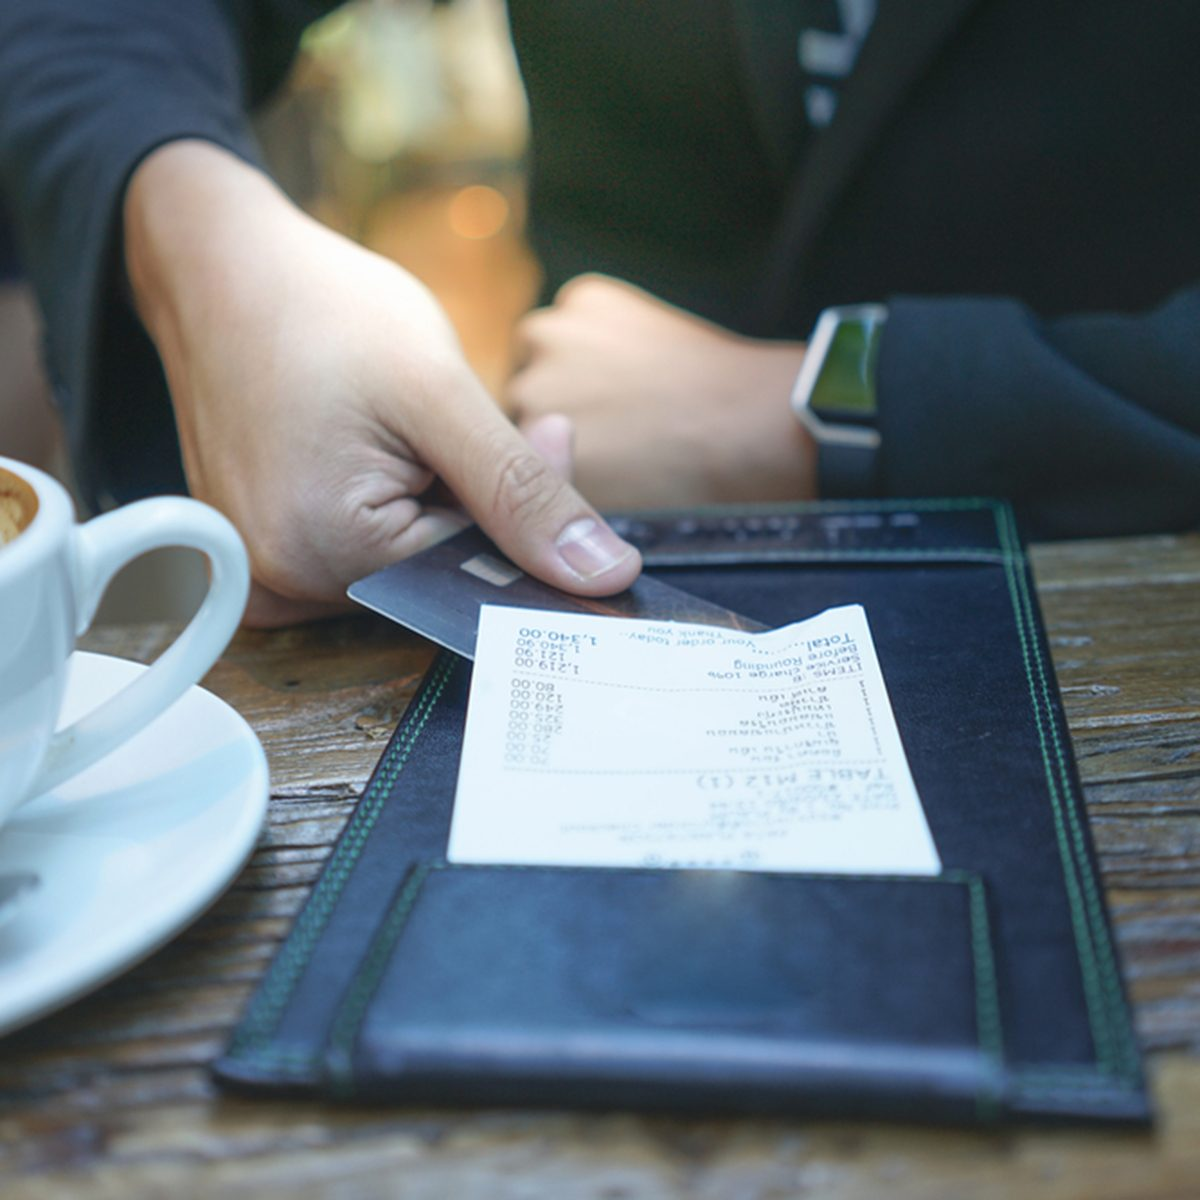 A businessman is paying his bill by credit card at the restaurant.